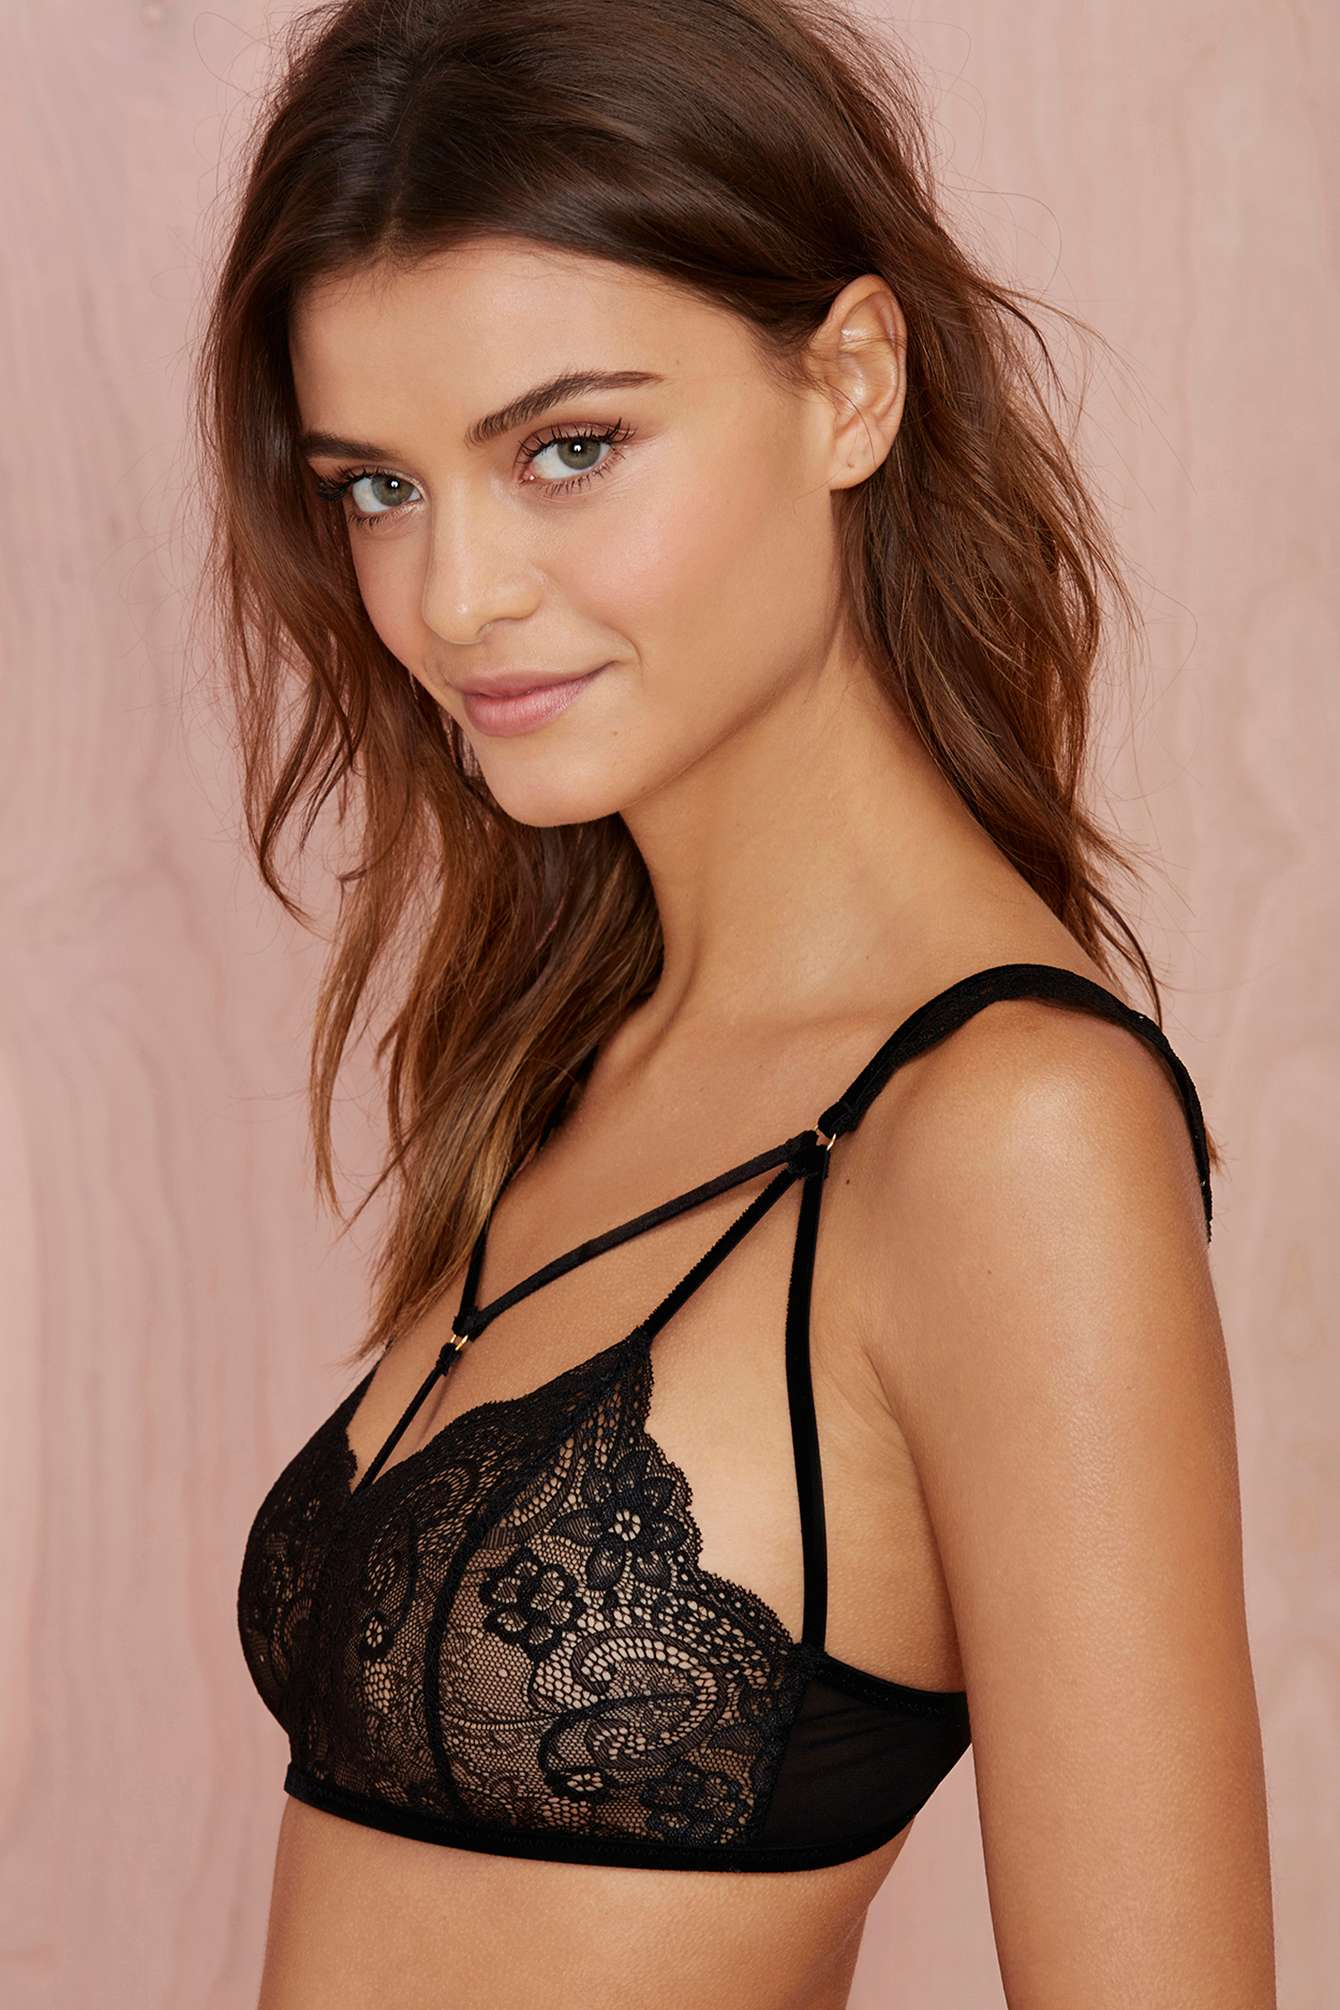 summer-style-crochet-top-bustier-Lace-Bra-Wireless-Brassiere-See-Through-Bralette-Fashion-Crop-Top-Triangle.jpg